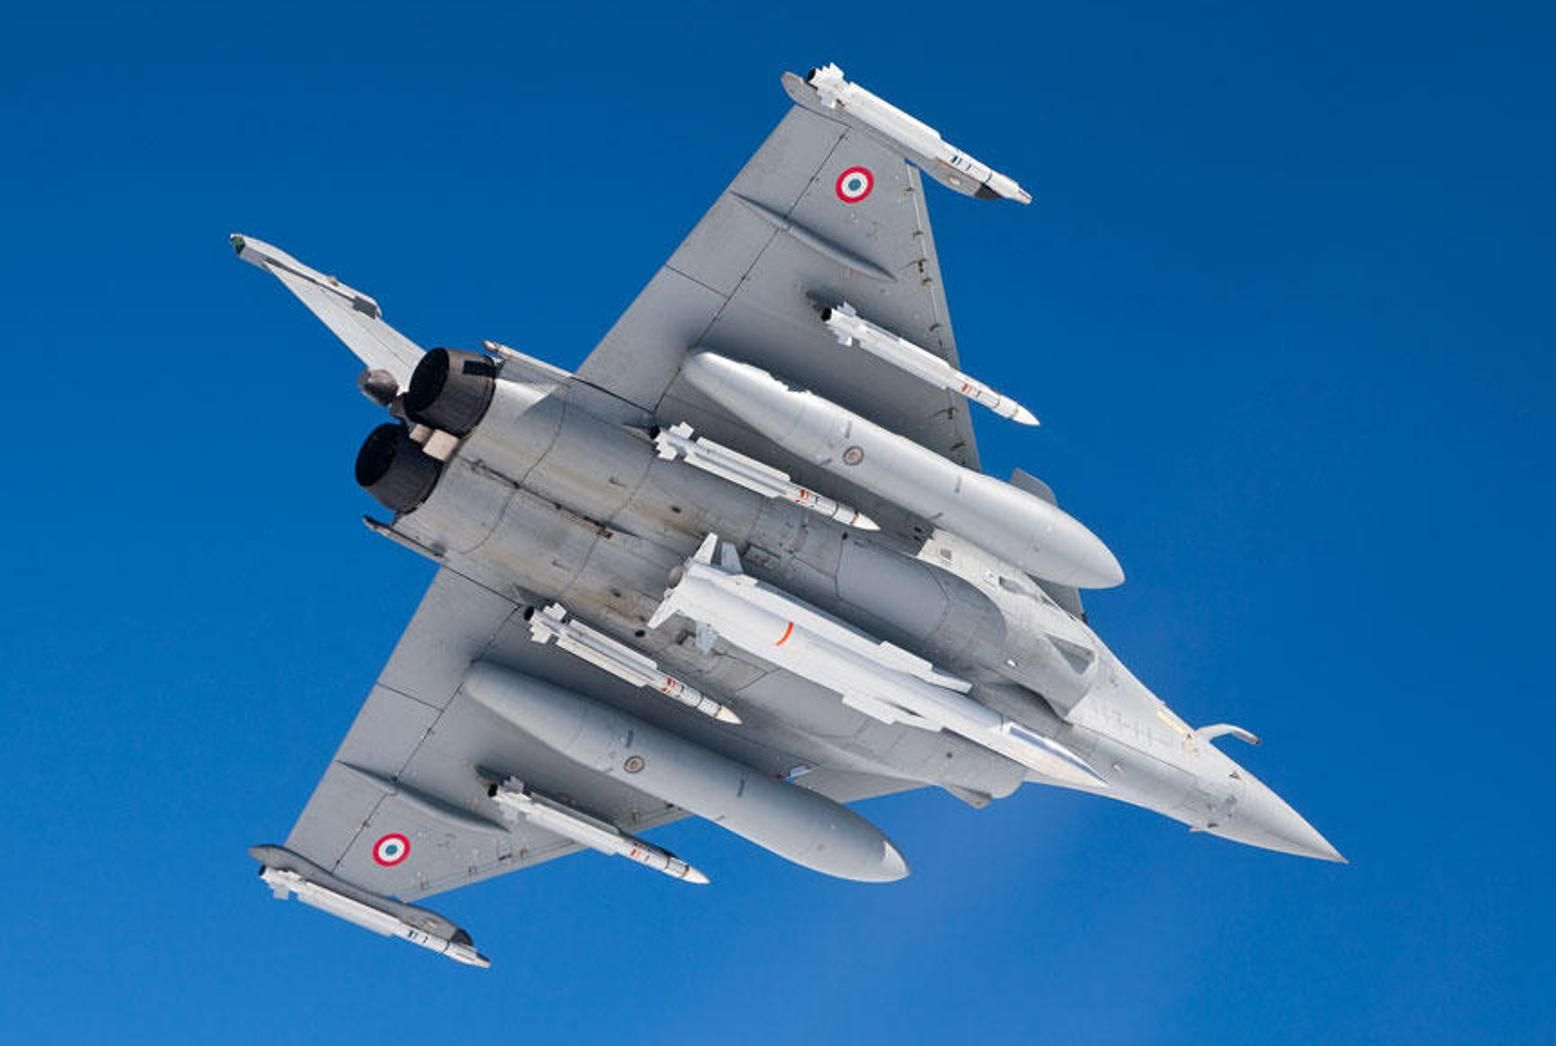 Ethiopia asked France to acquire Rafale, nuclear missiles